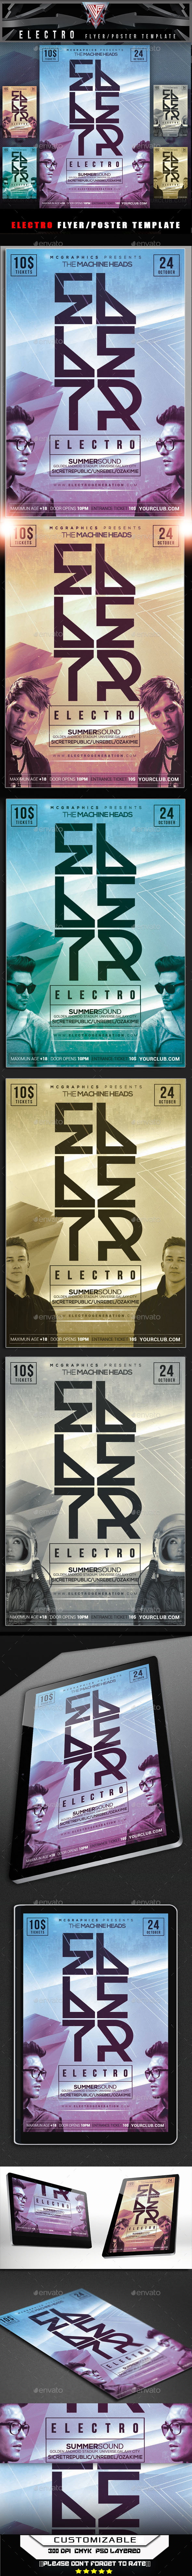 GraphicRiver Electro Fllyer Template 11833823